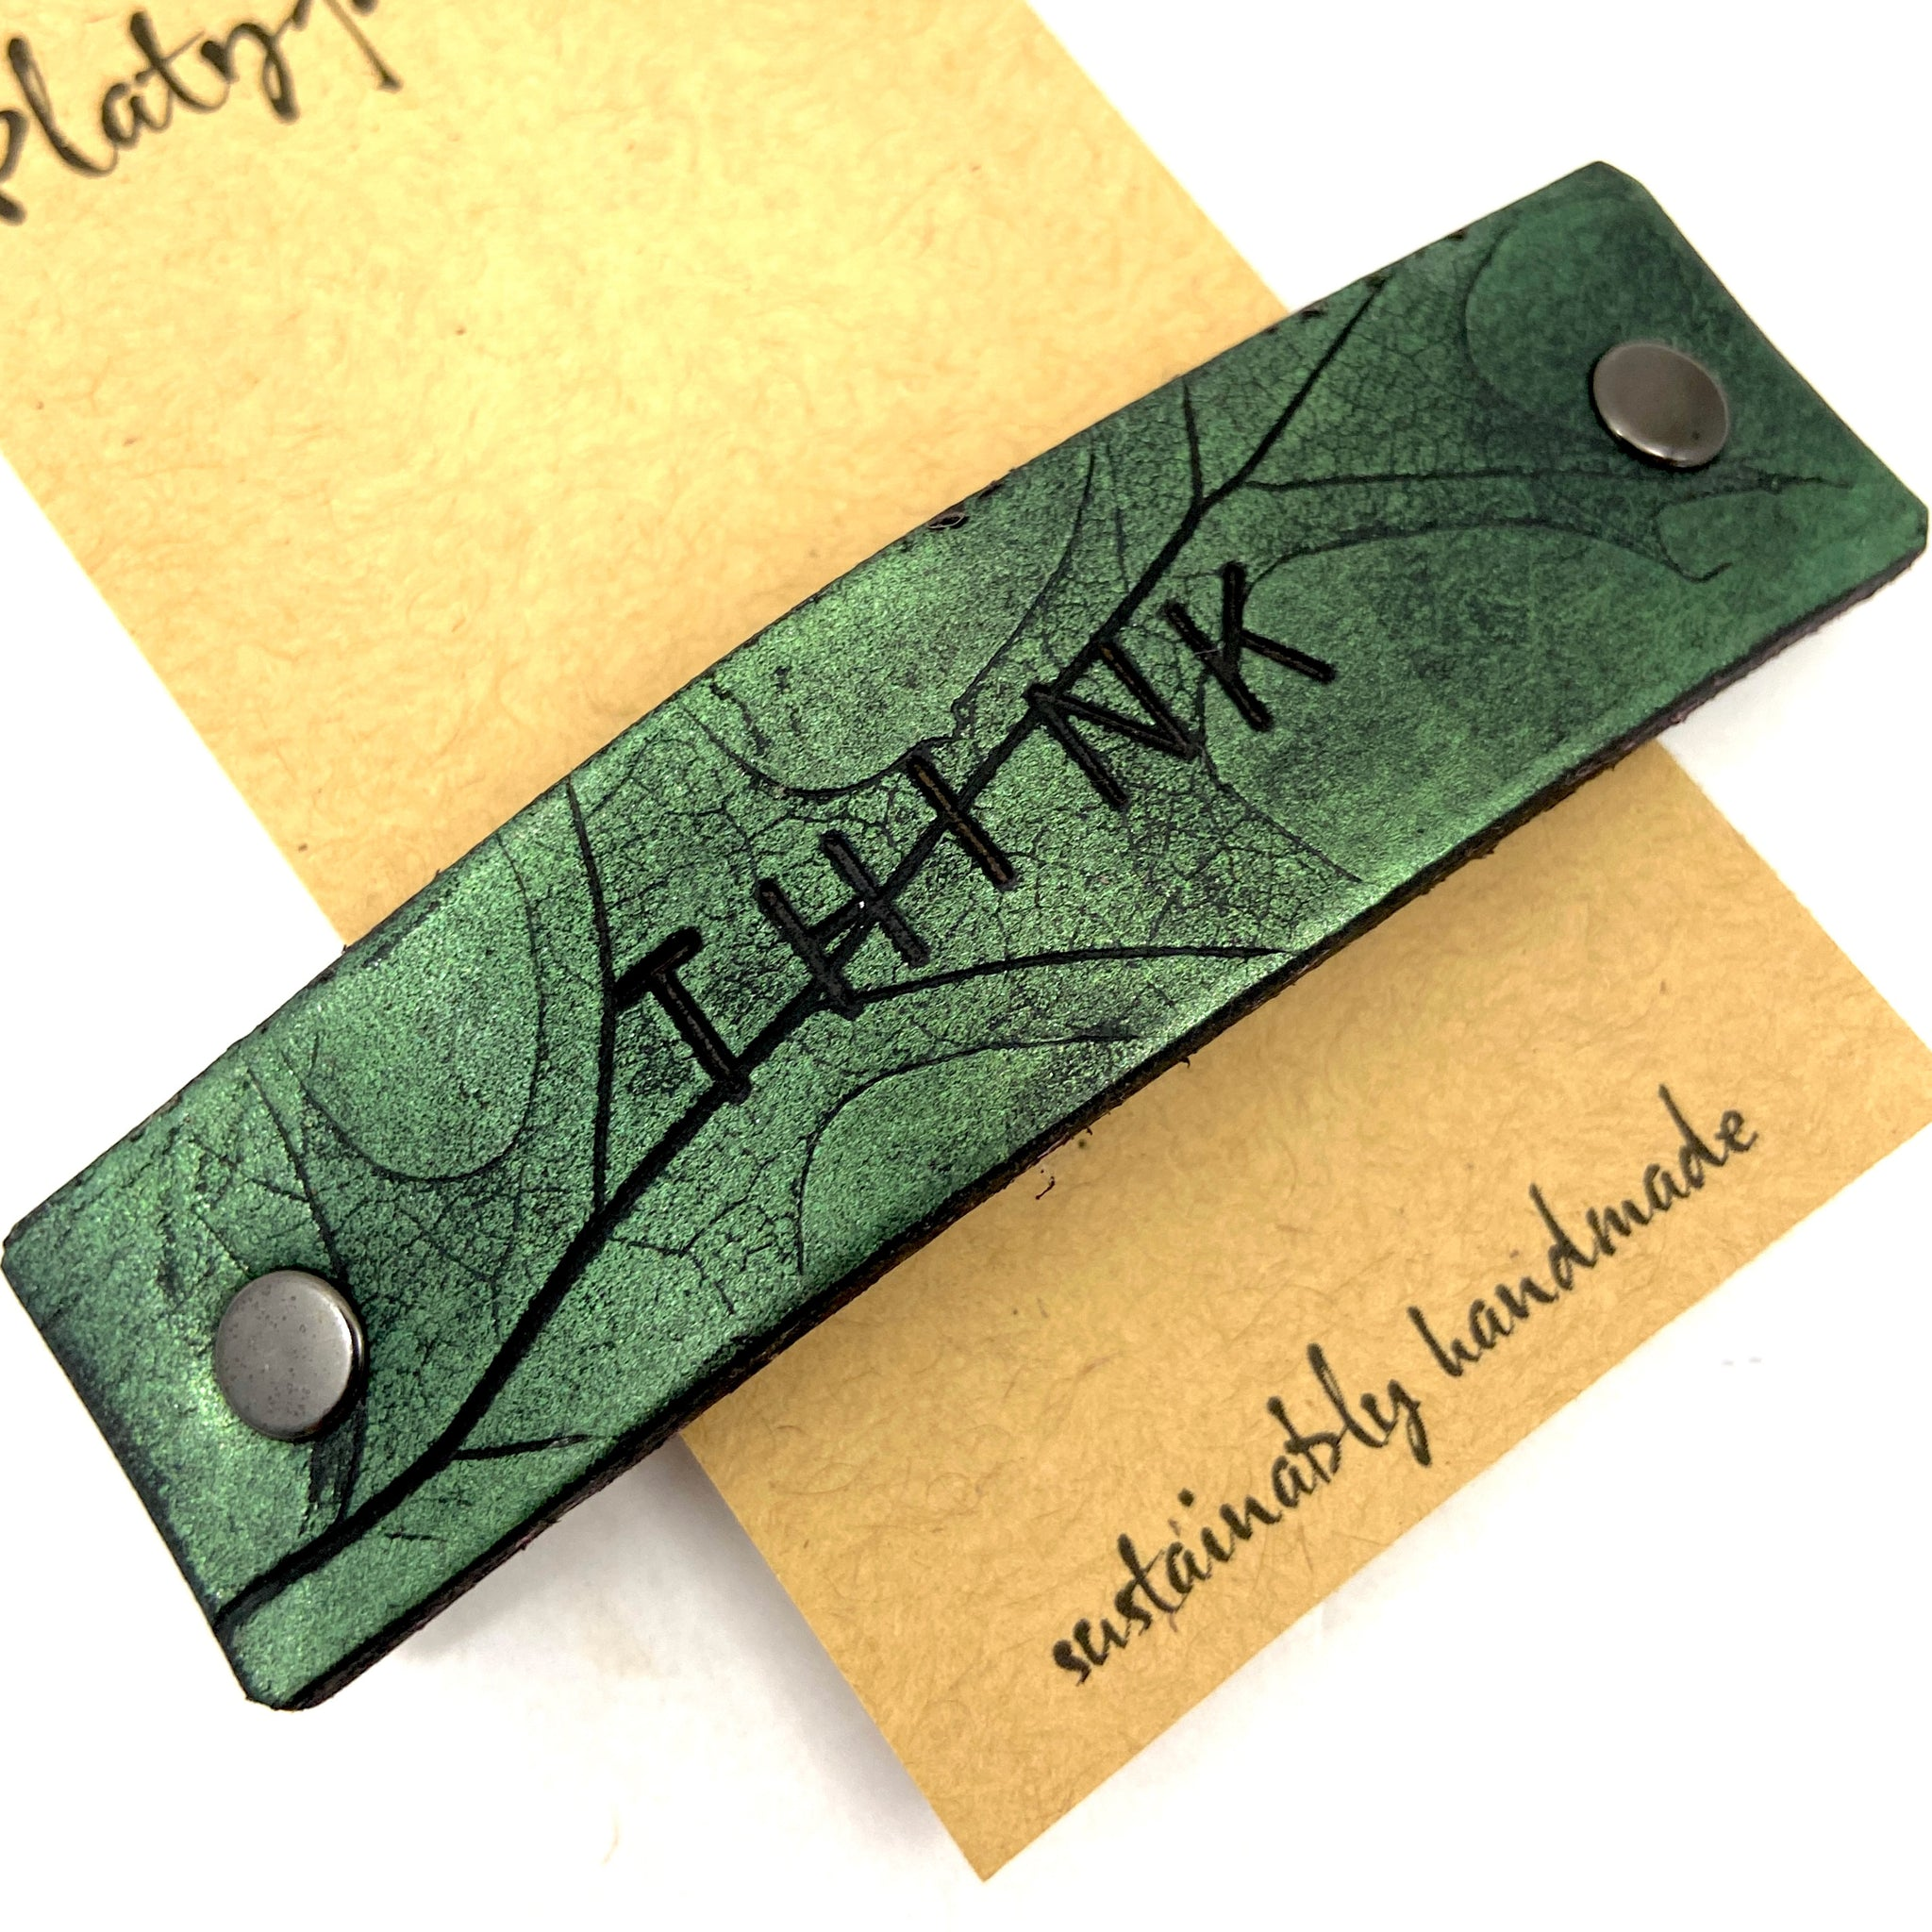 THINK Green Eco / Message Barrette with Pressed Leaf Design - Platypus Max